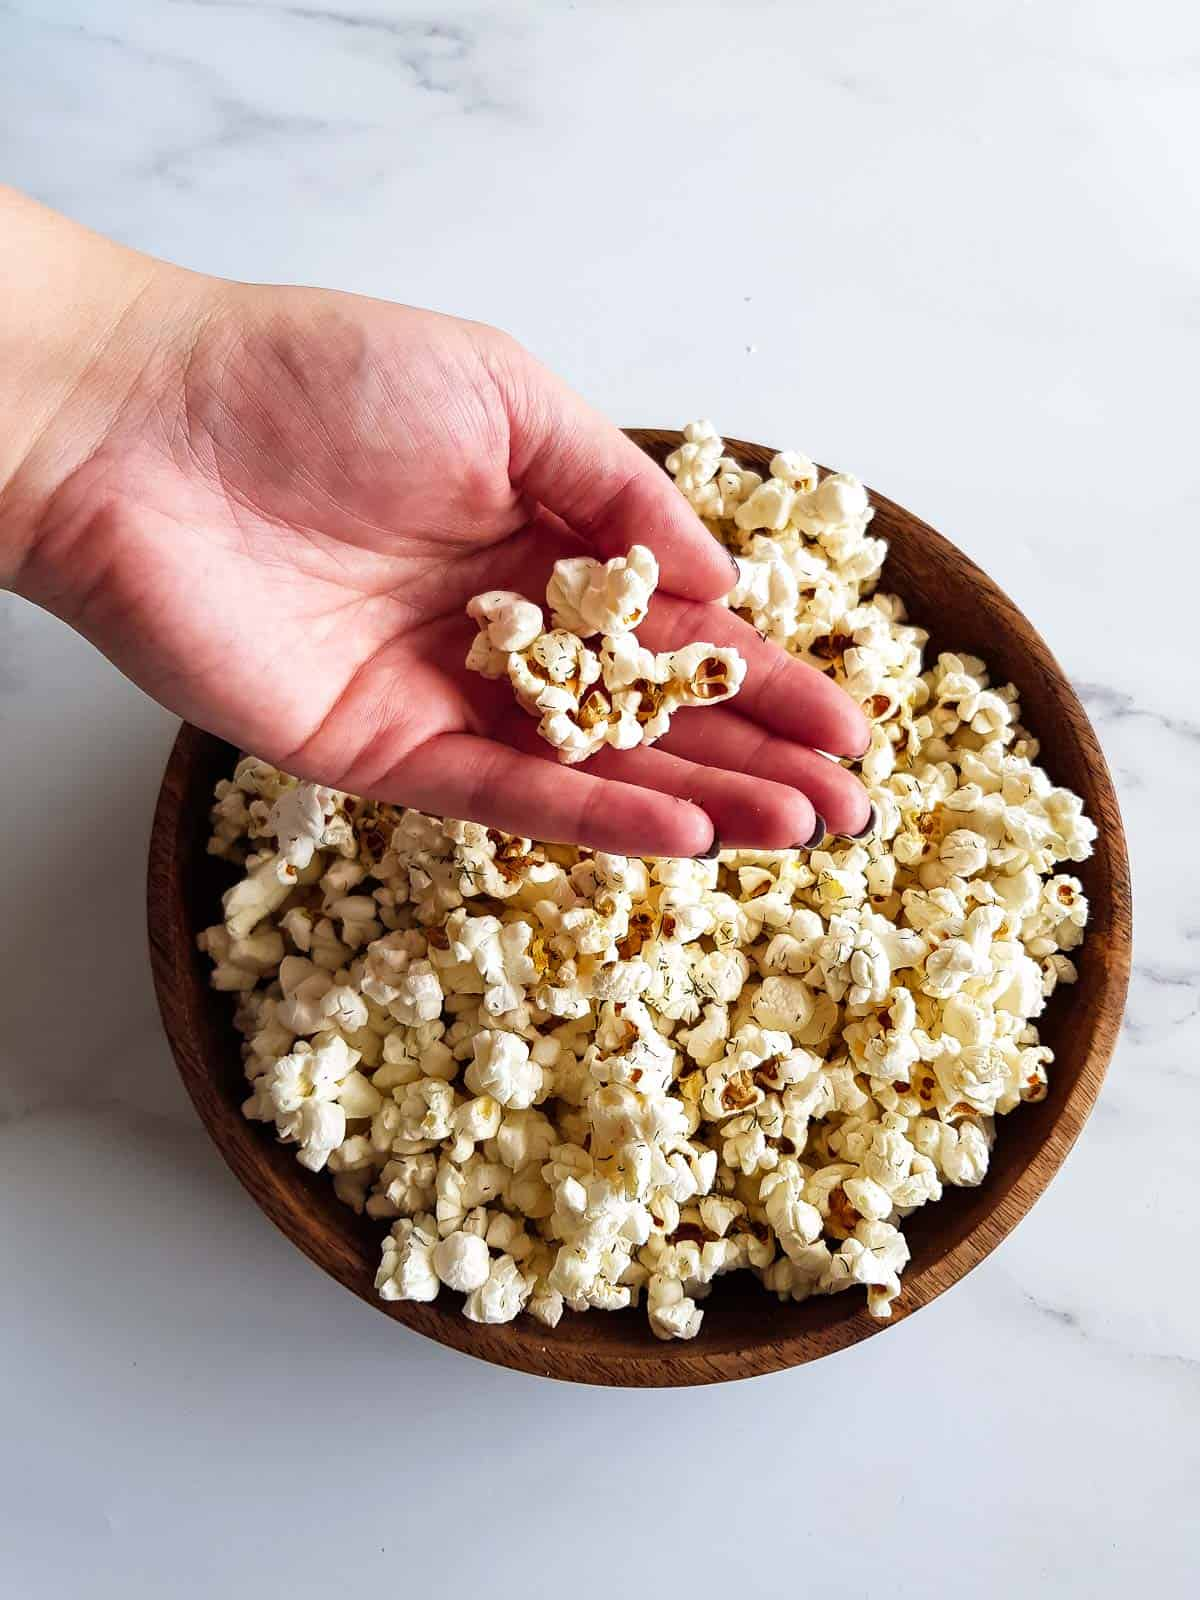 A hand grabbing a portion of popcorn from a wooden bowl.